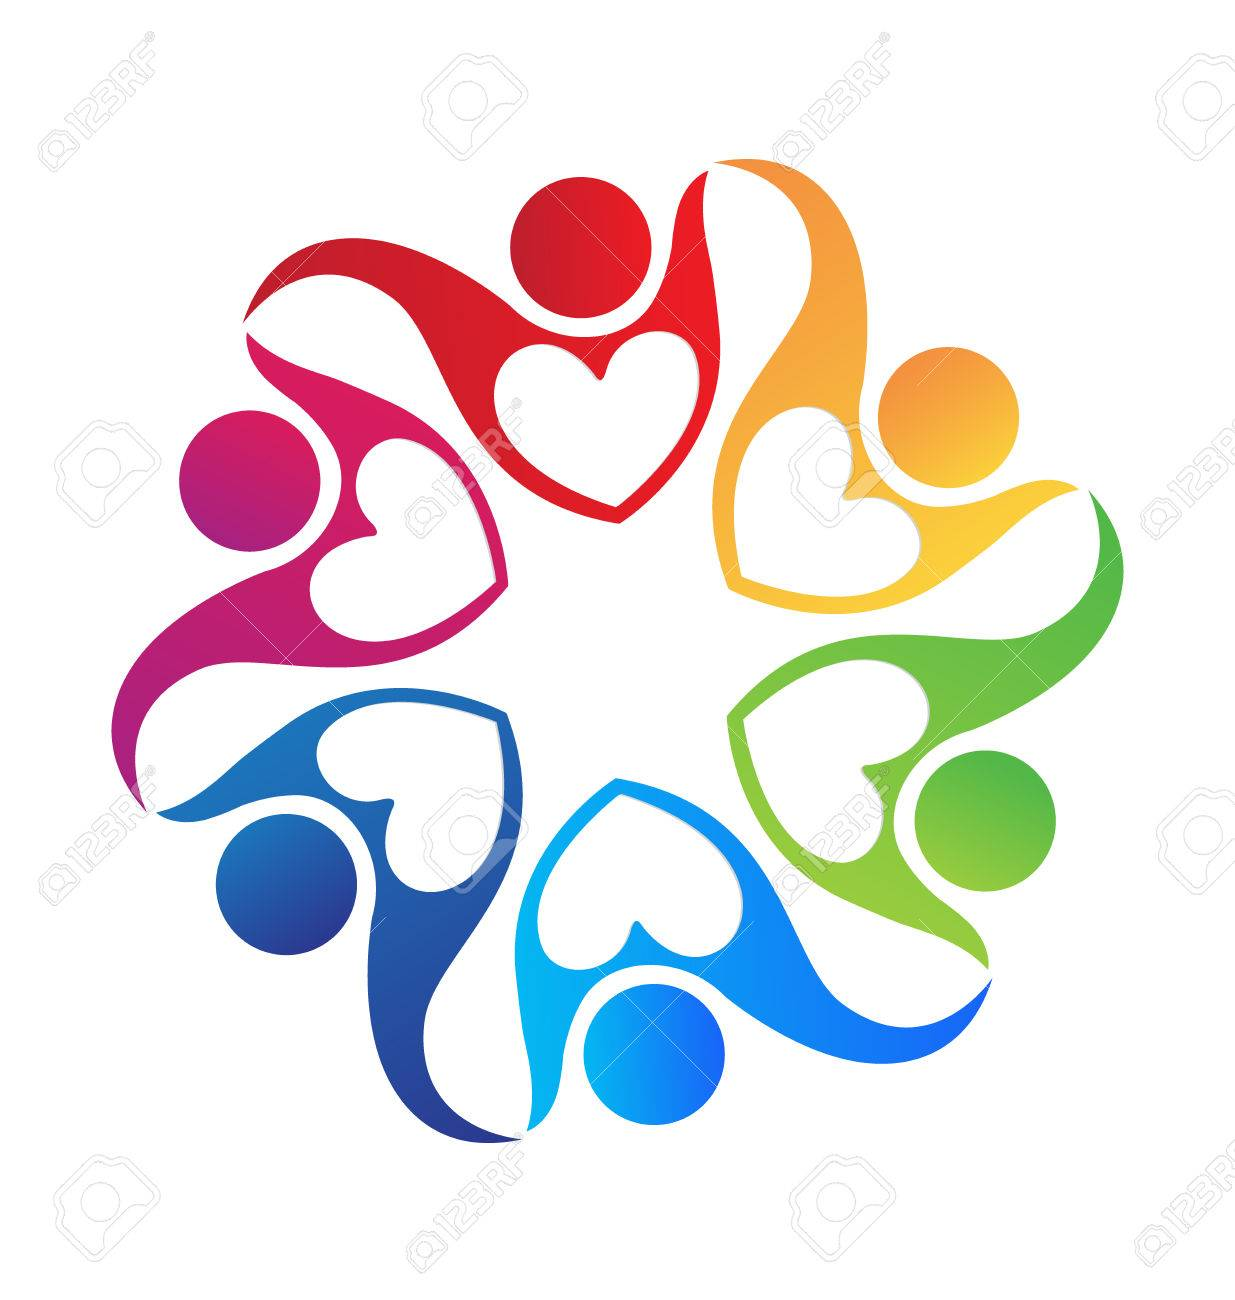 people holding hands love shape colorful icon logo royalty free rh 123rf com